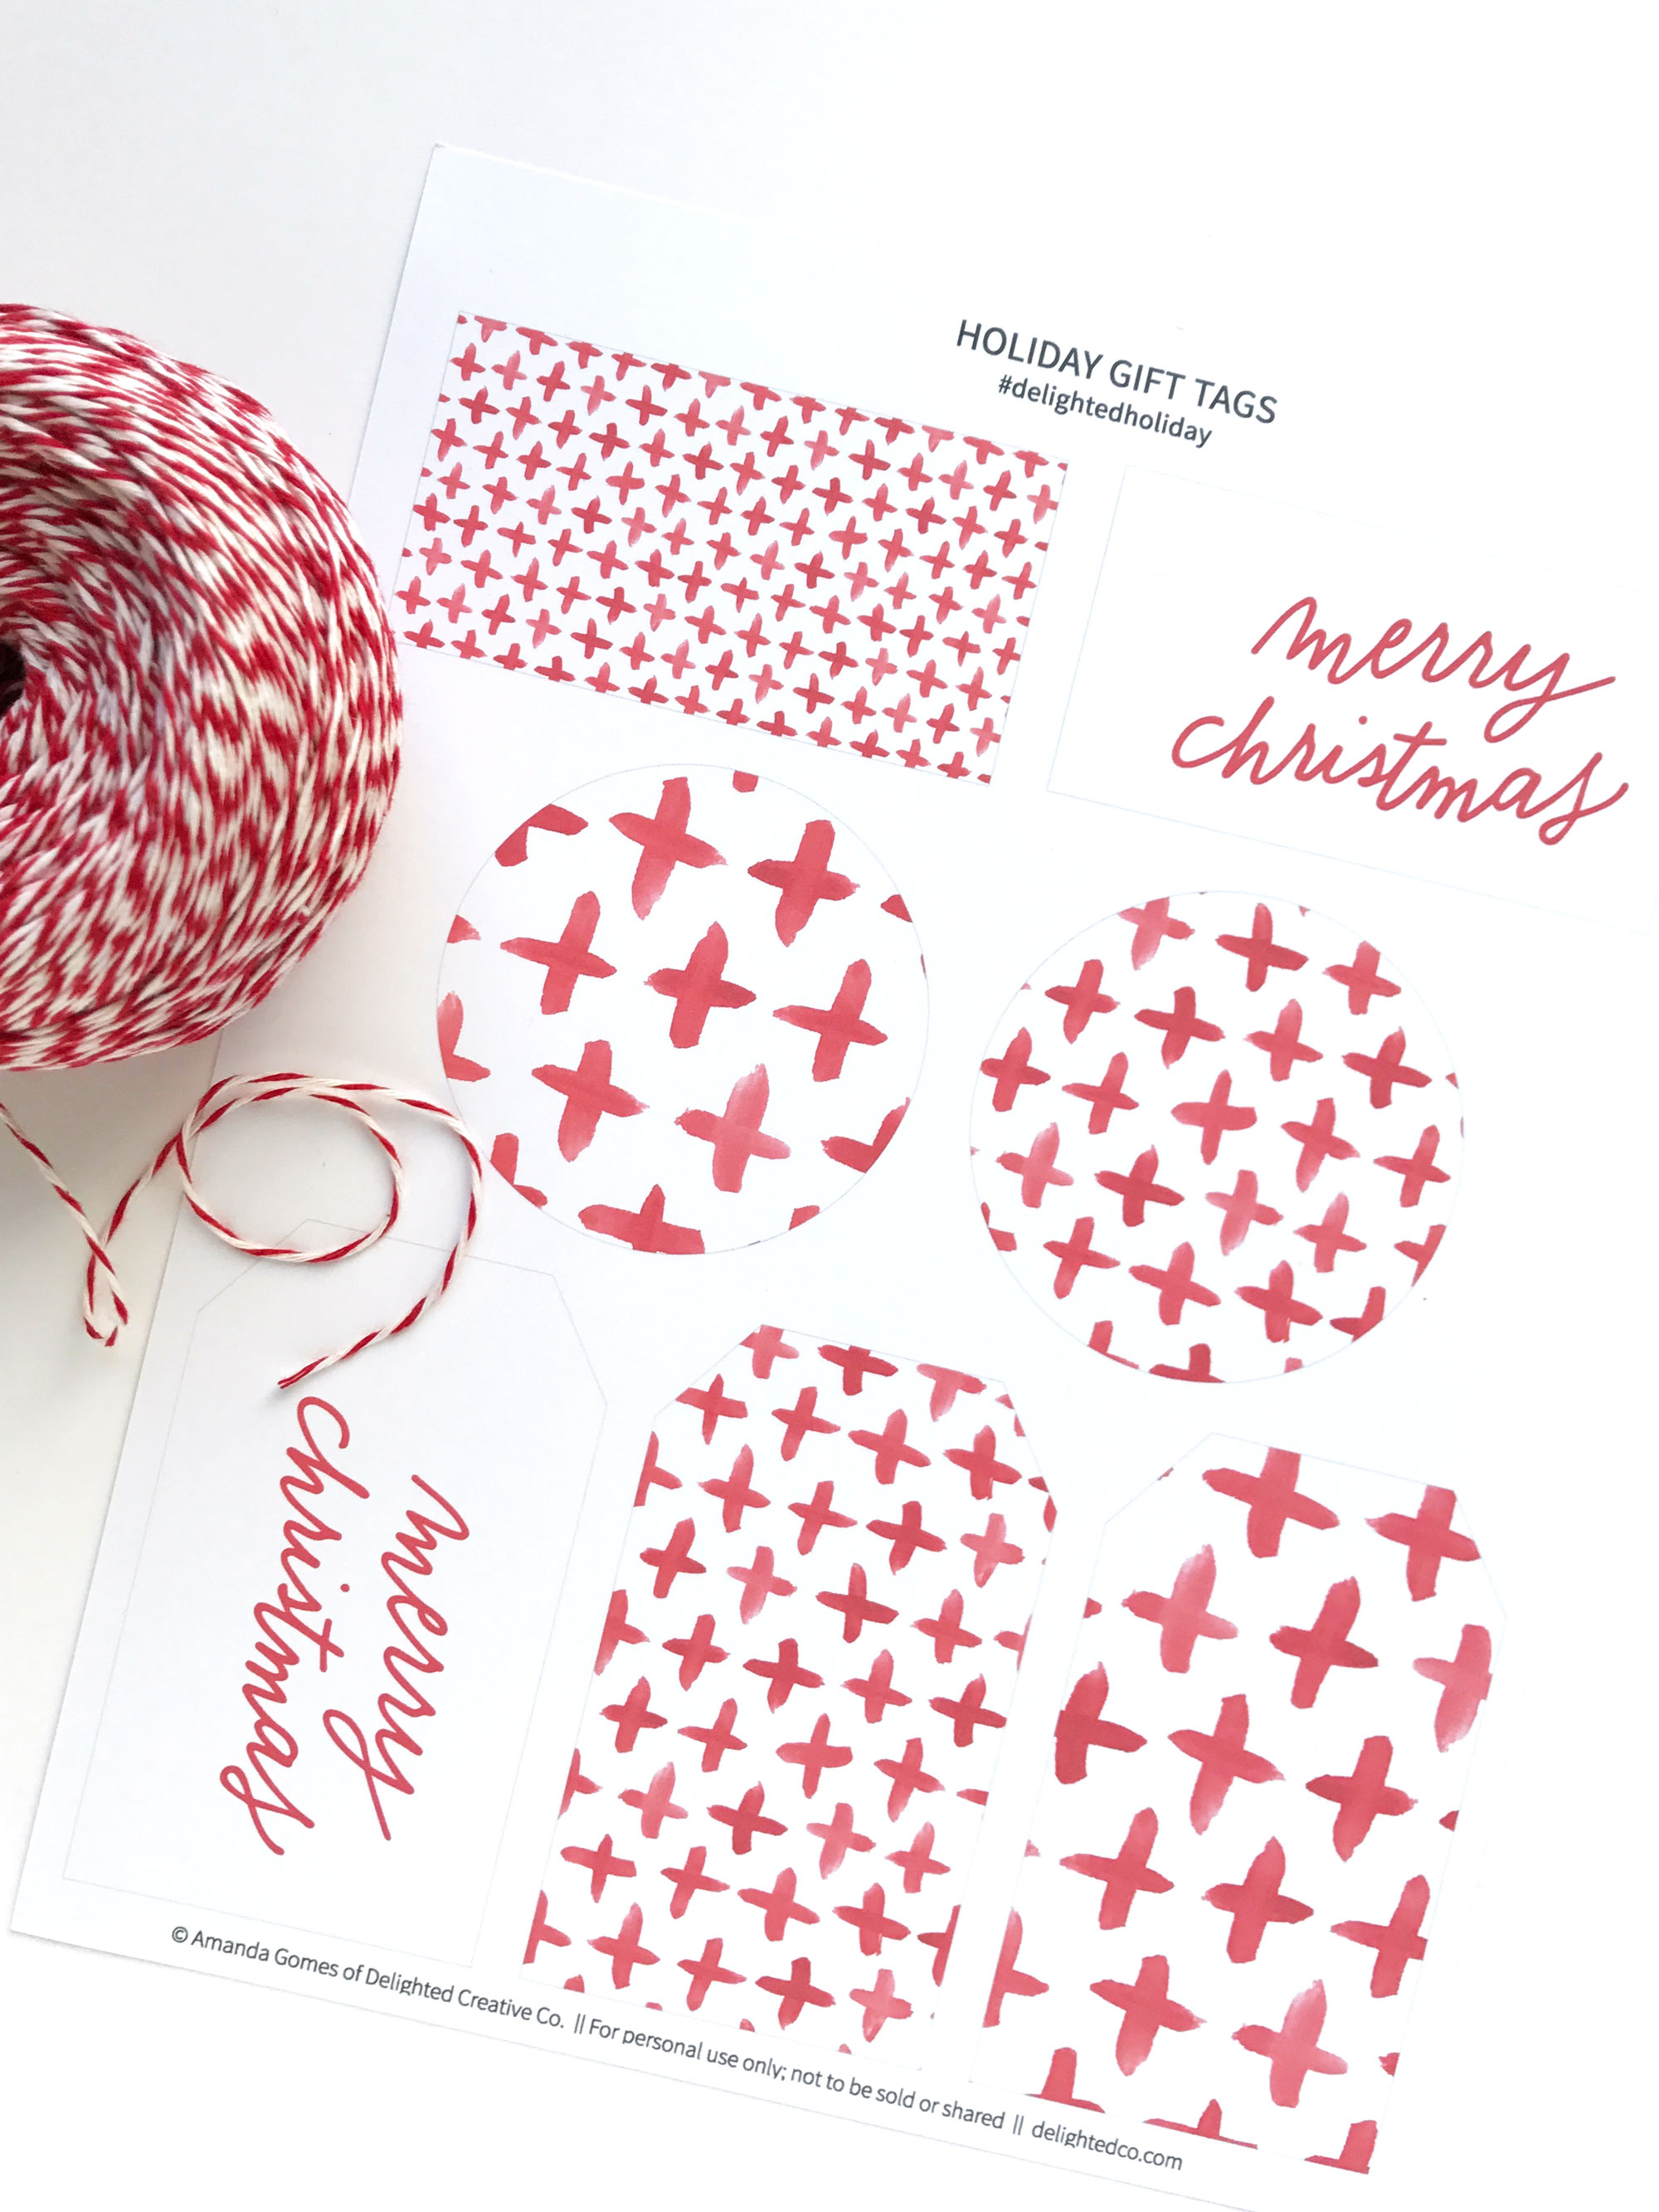 Download free holiday Christmas gift tags || delightedco.com